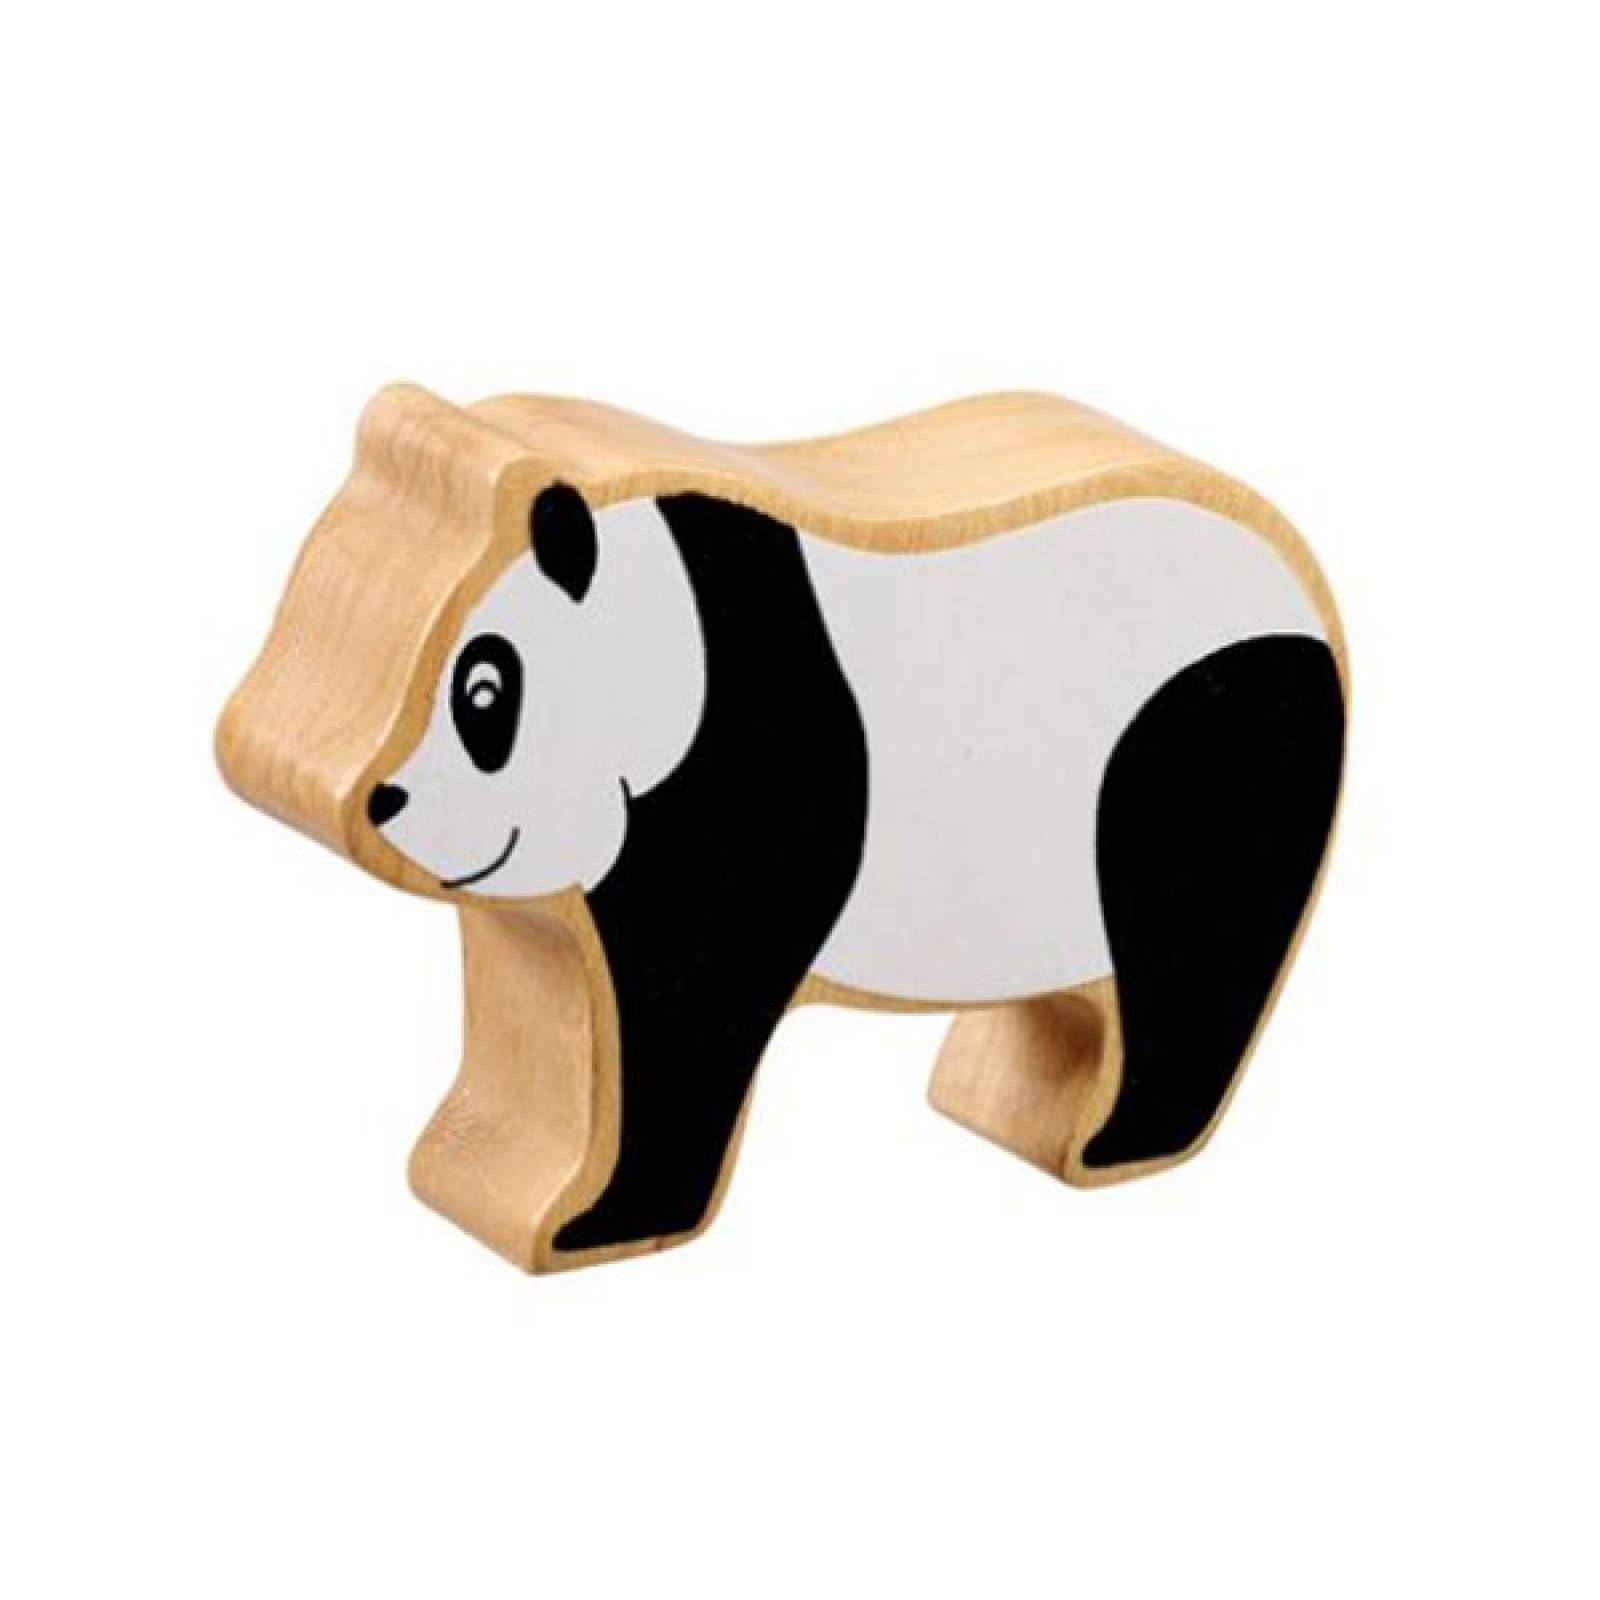 Black & White Panda Wooden PAINTED Animal Fairtrade Lanka Kade